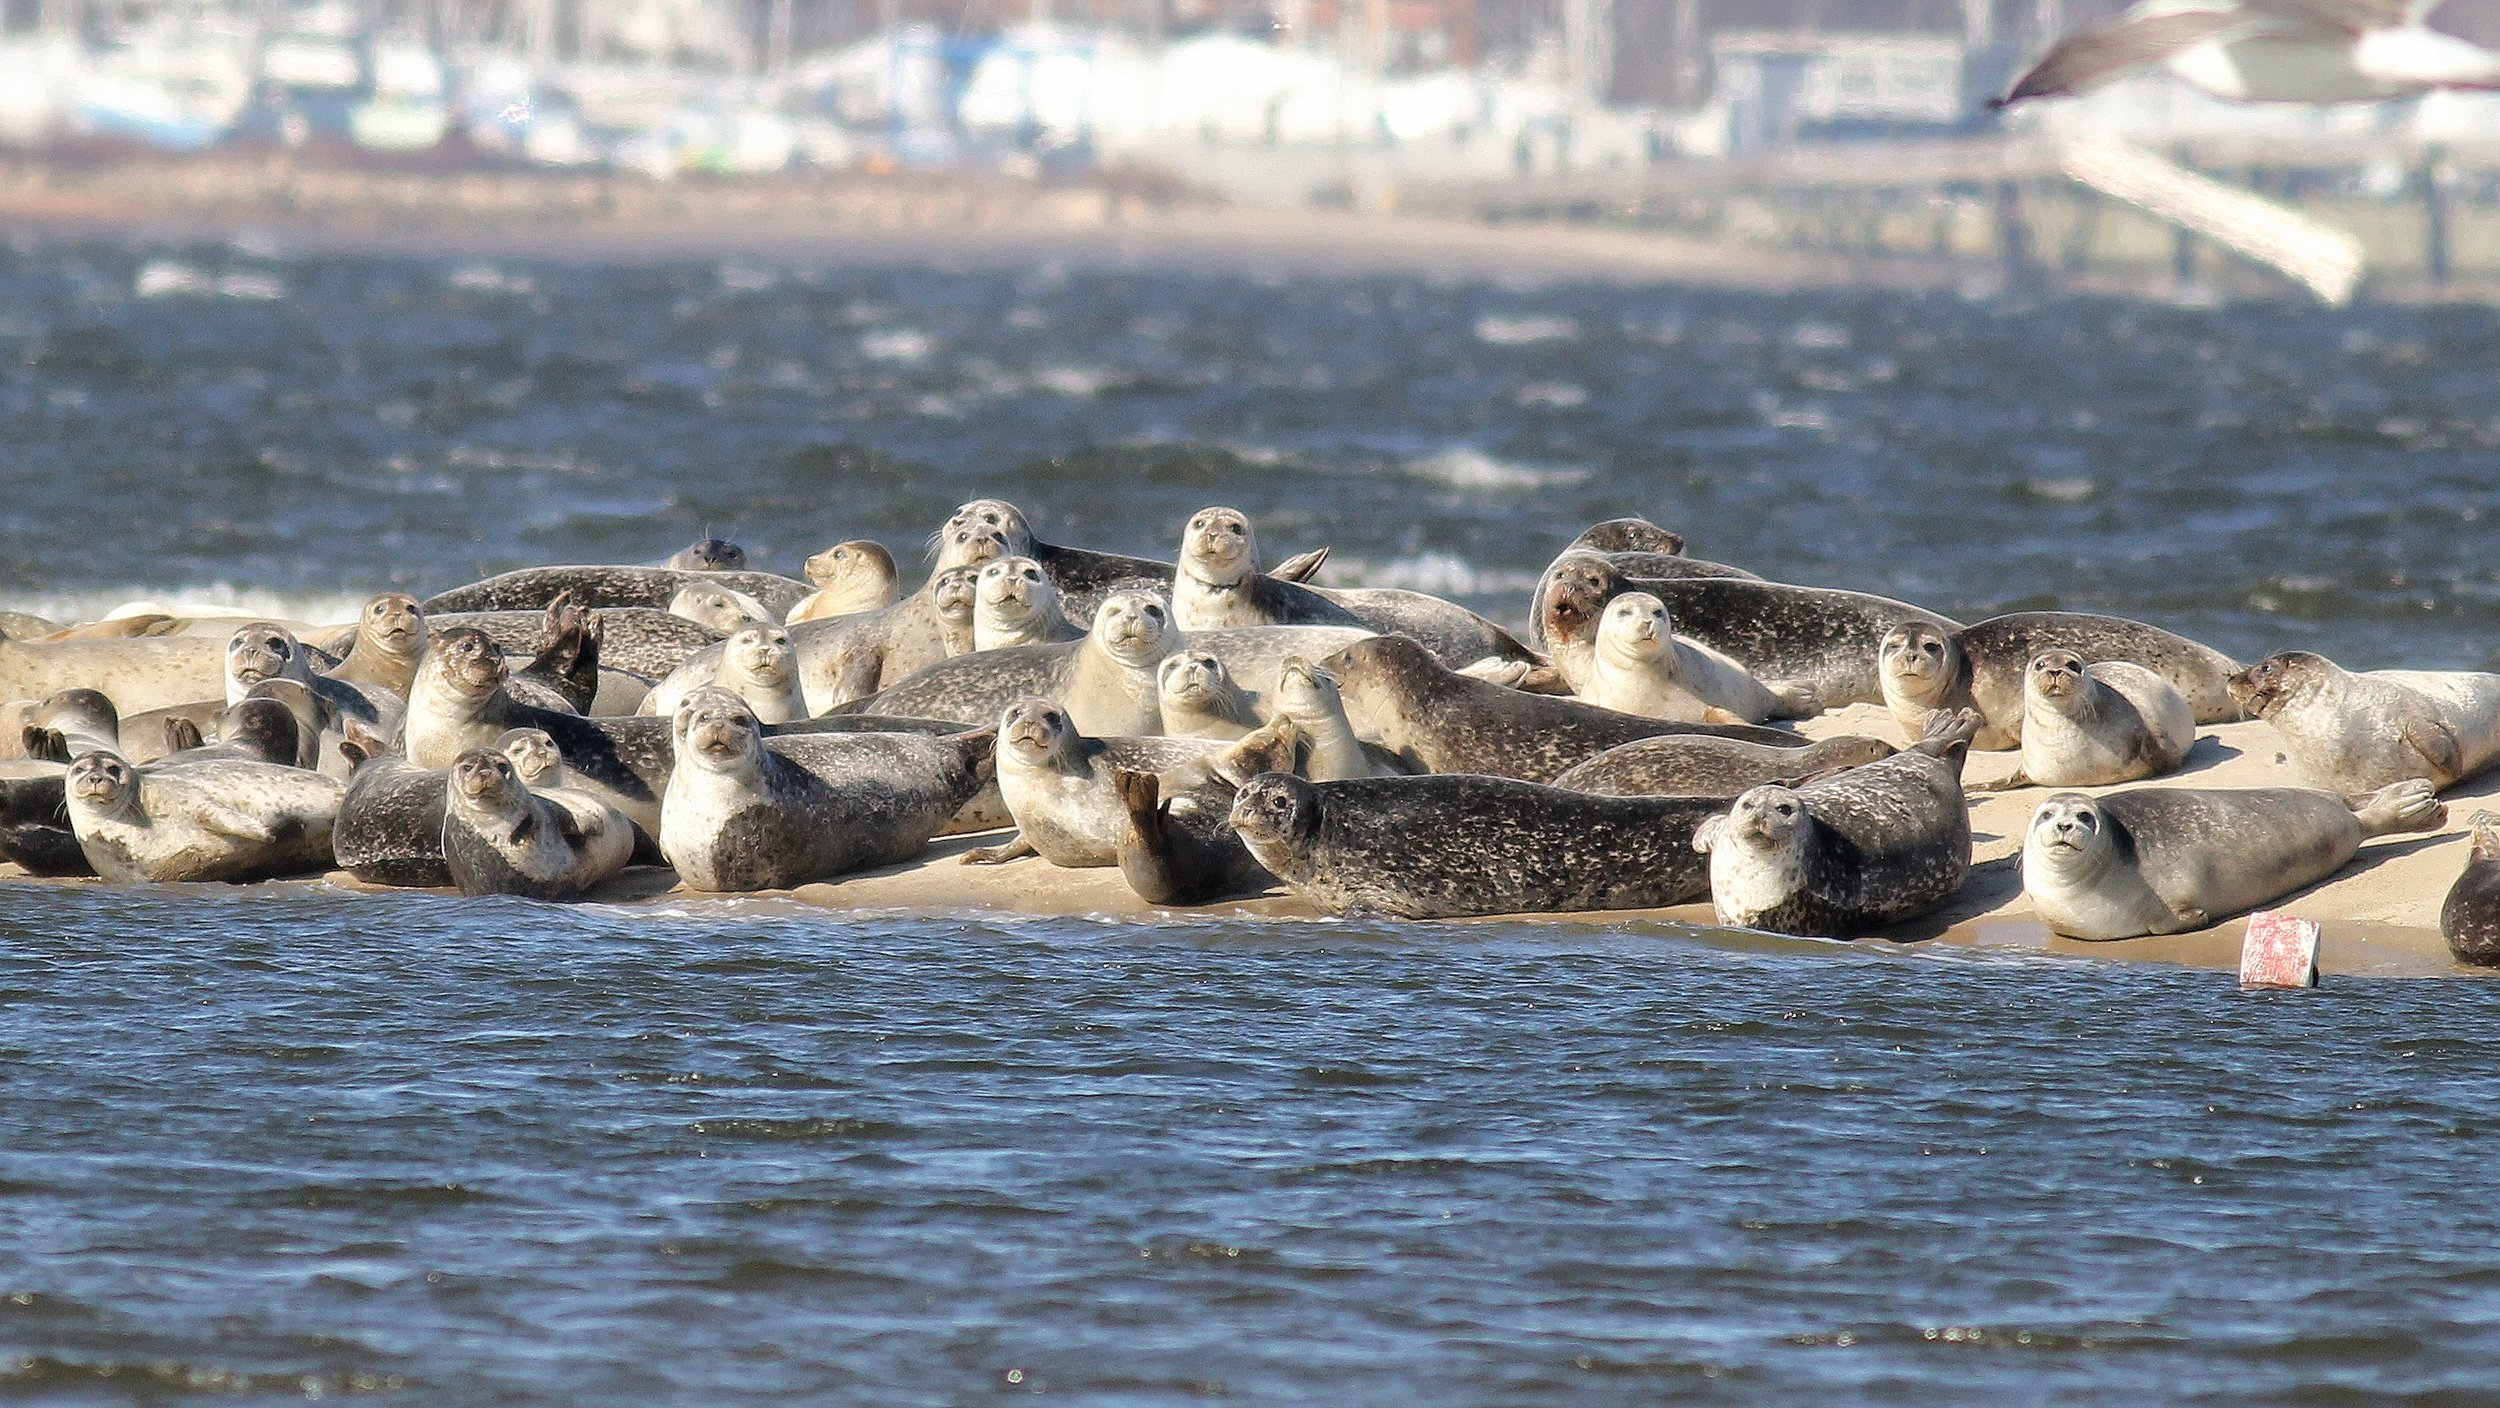 SANDY HOOK BAY, NJ - SAVE SEALS FROM HARASSMENT!